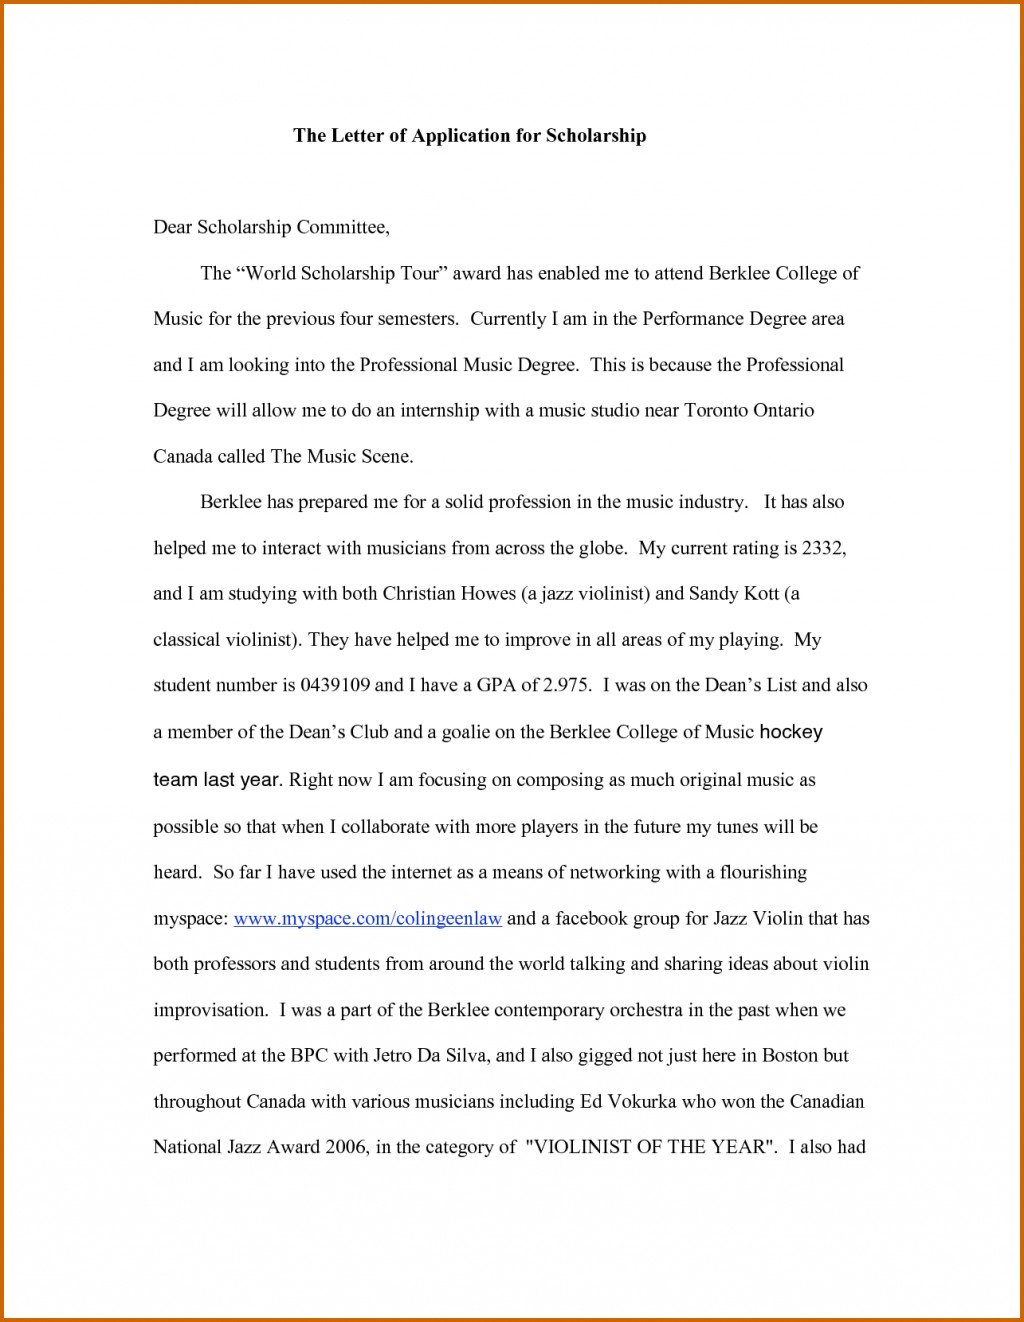 003 Essay Example How To Write Application For Scholarship Nursing Entrance Beautiful Samples School Nurse Practitioner Examples Large